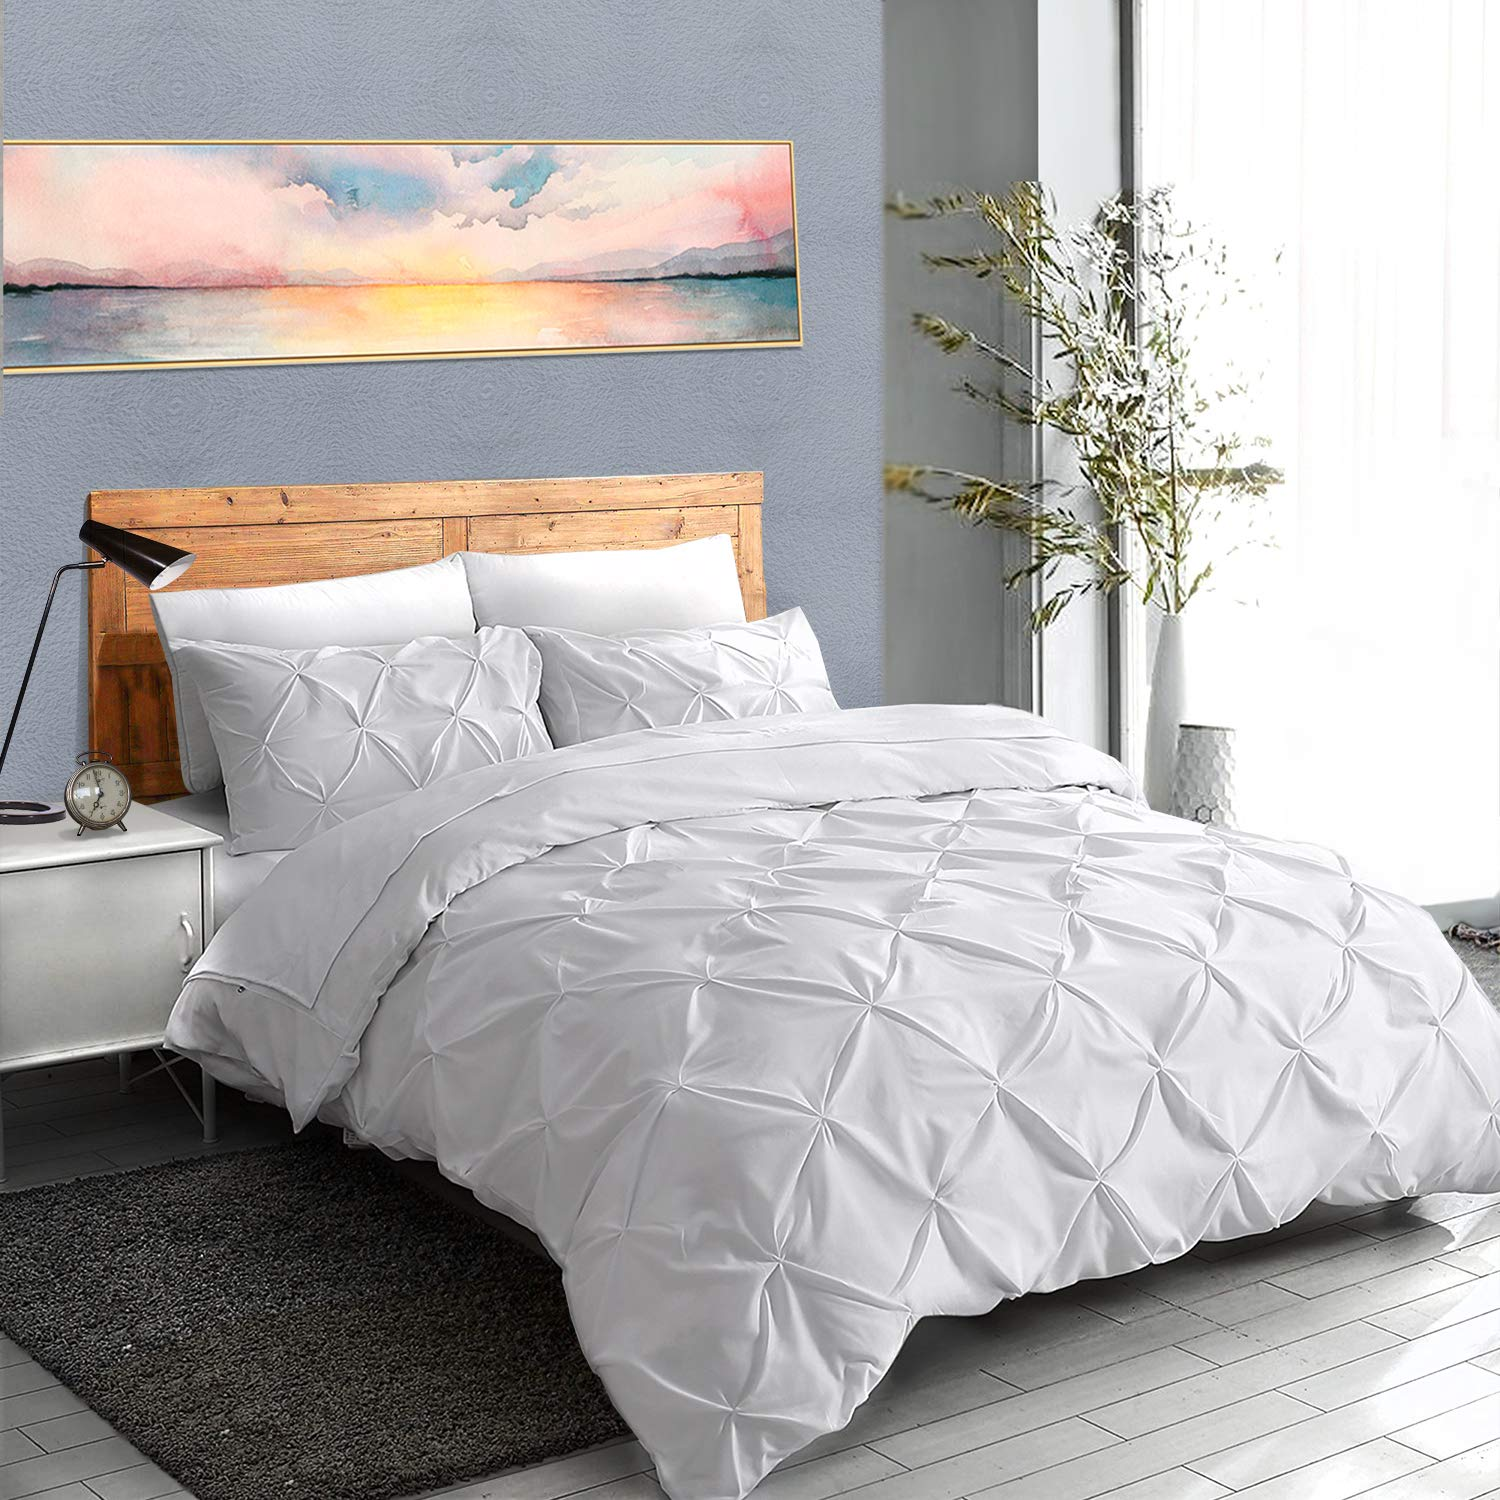 ASHLEYRIVER 3 Piece Luxurious Pinch Pleated Duvet Cover with Zipper & Corner Ties 100% 120 g Microfiber Pintuck Duvet Cover Set(Queen White) by ASHLEYRIVER (Image #7)